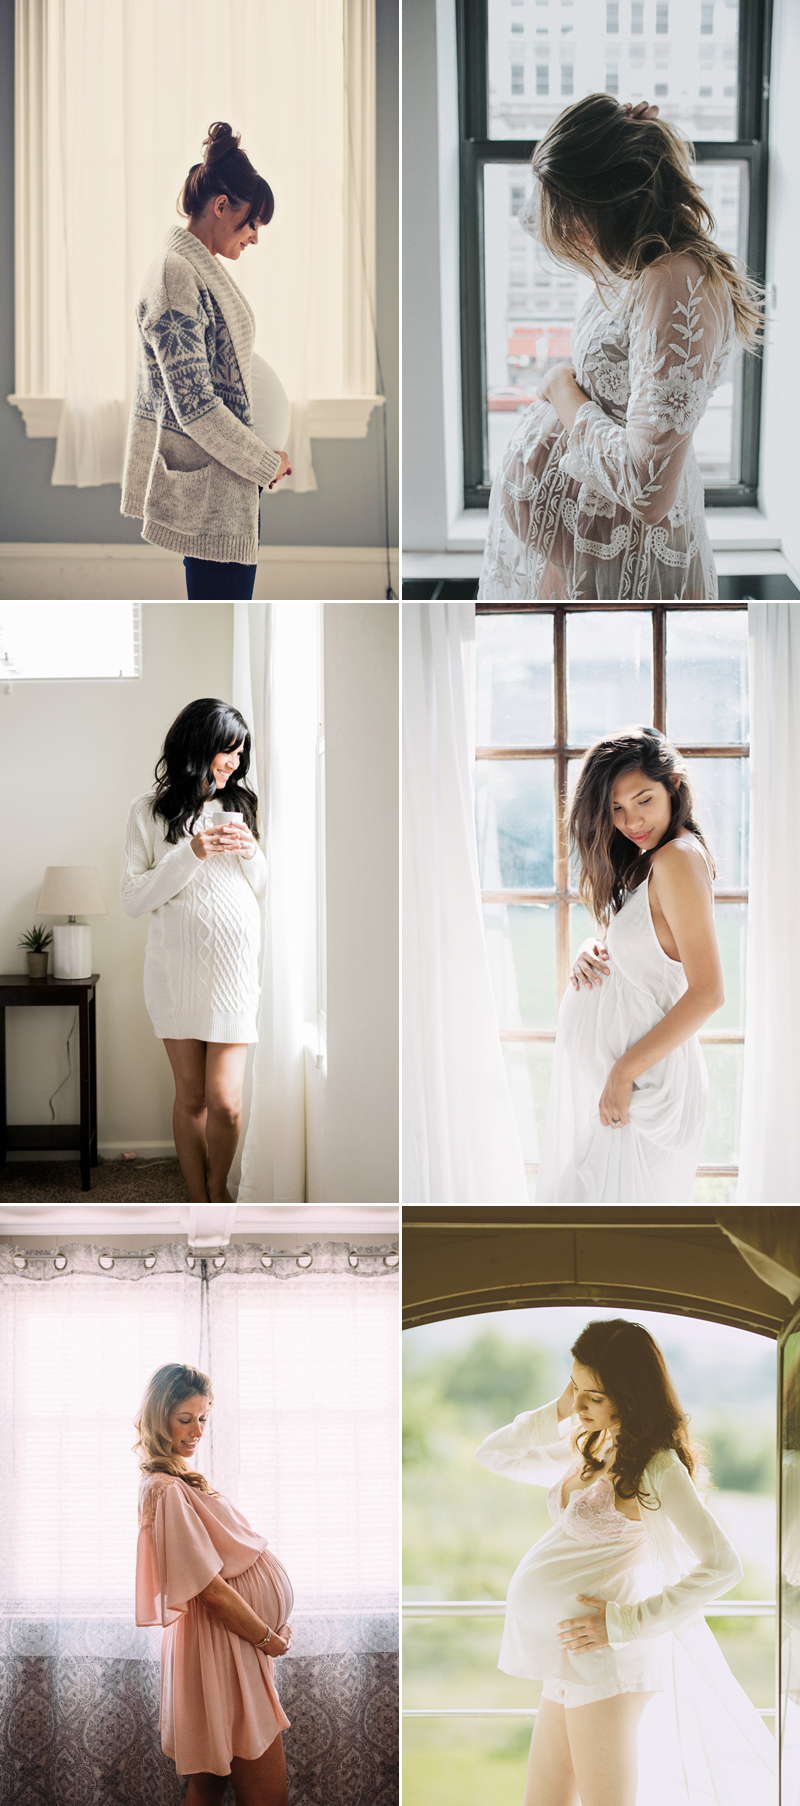 home-maternity03-windowlight